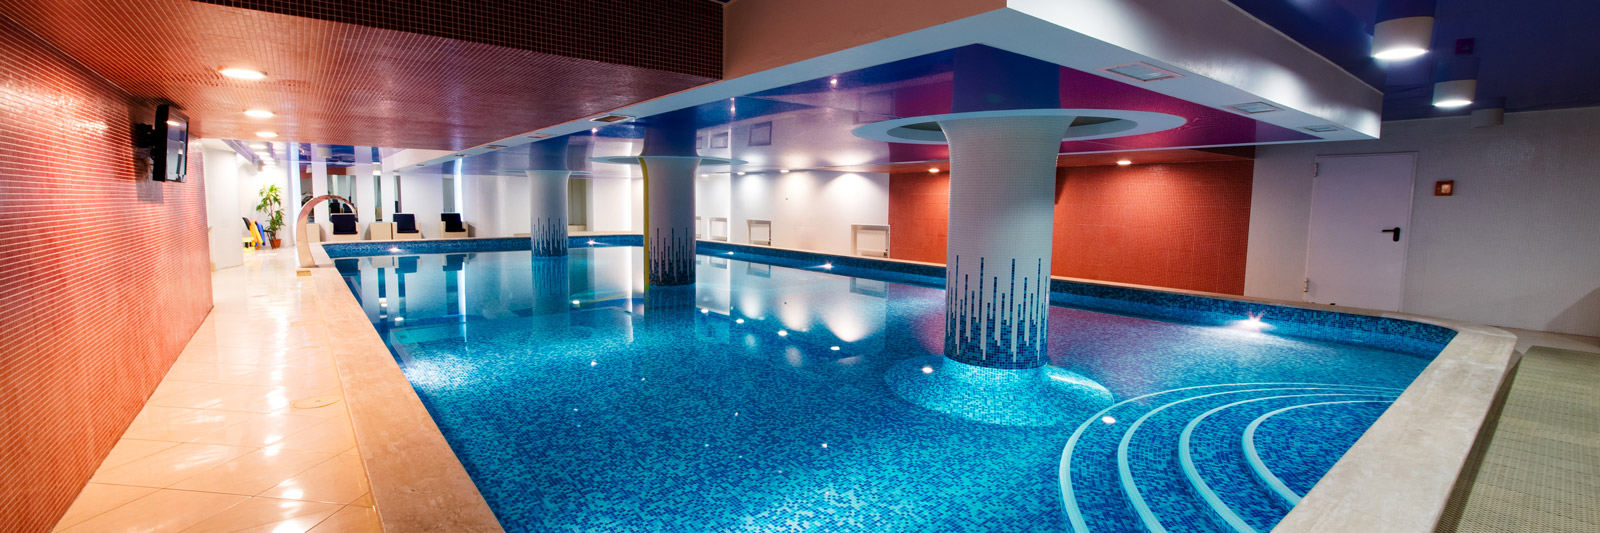 image of an indoor swimming pool